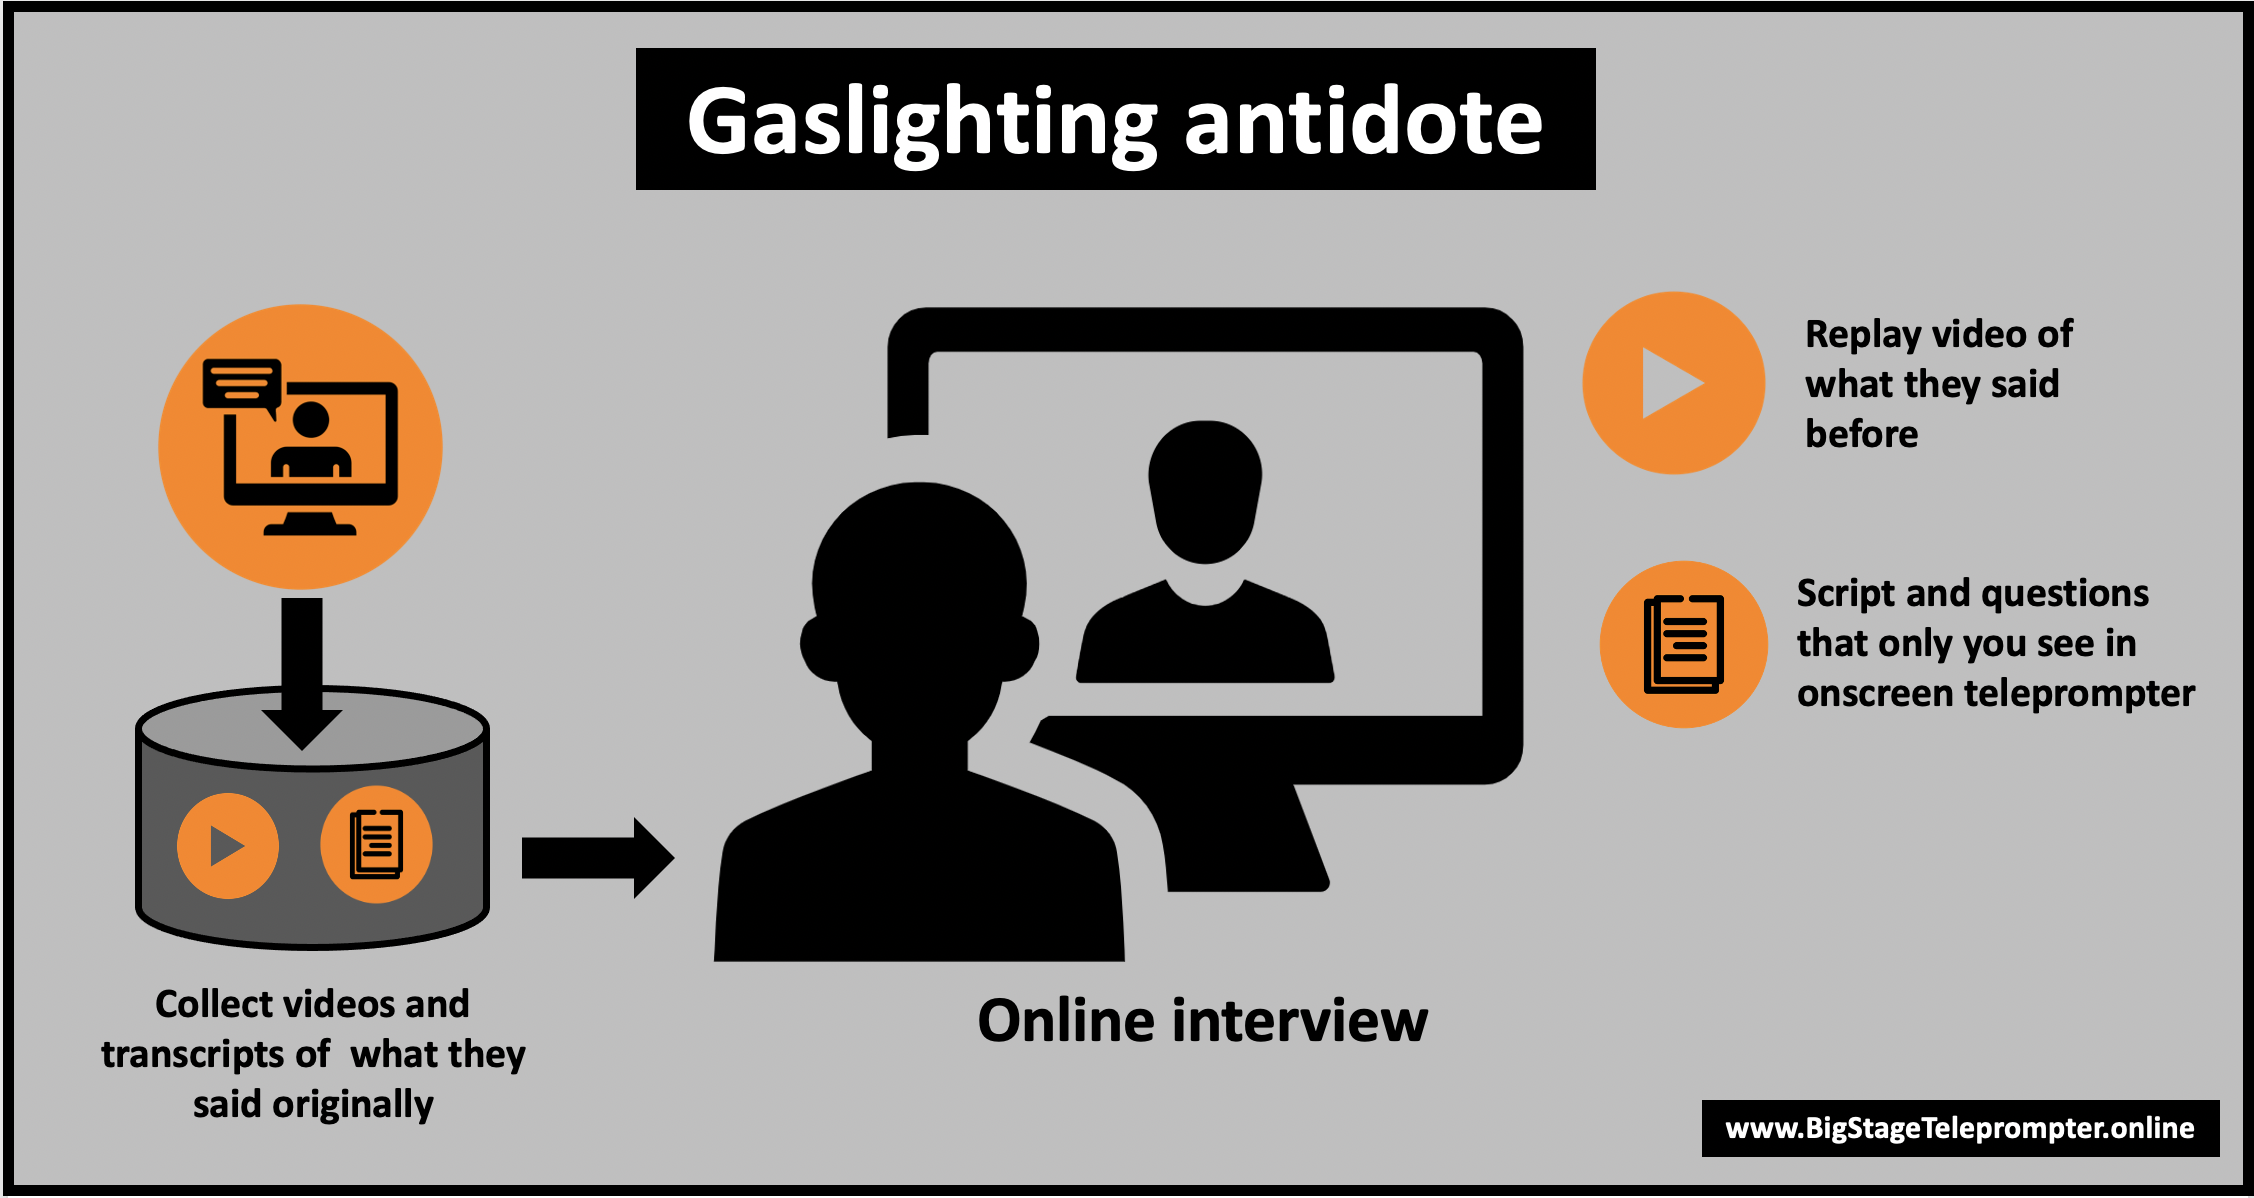 Collect videos of what they said earlier and use those clips in interviews and presentations.